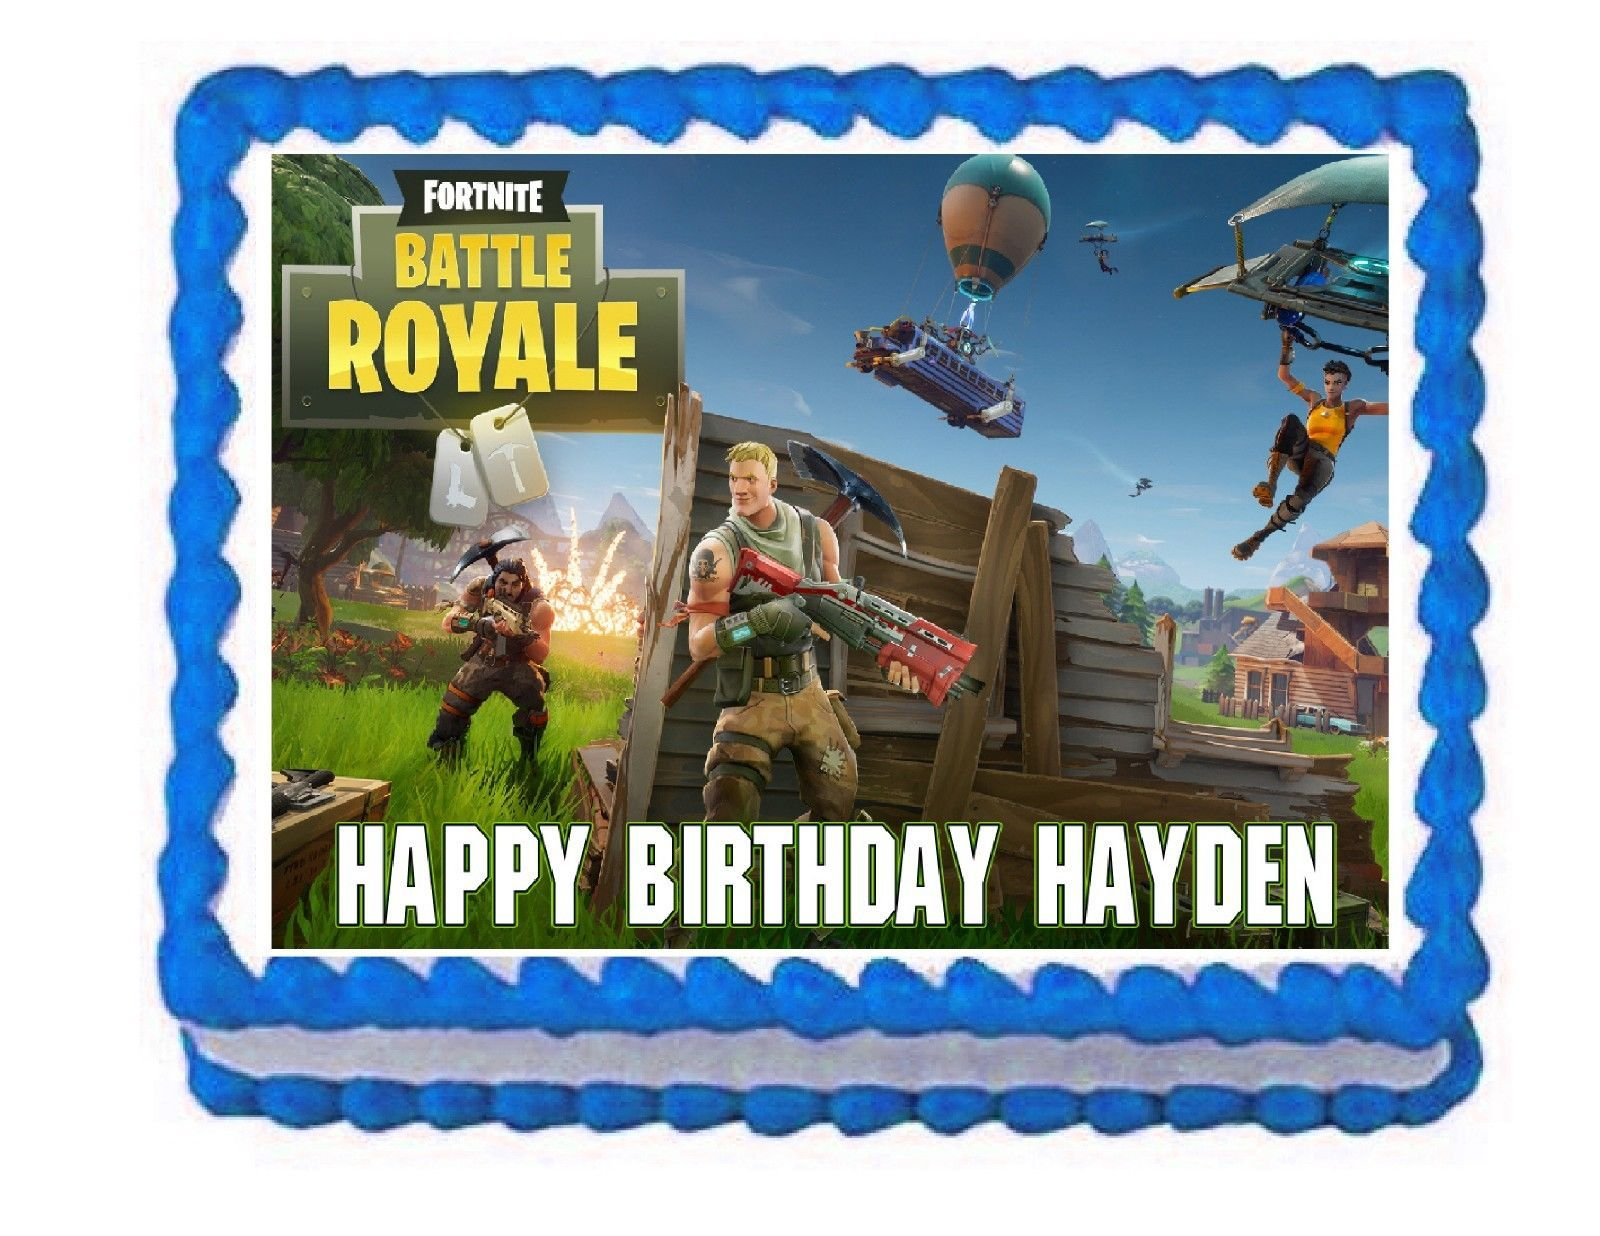 Baking Accs. & Cake Decorating Cake Toppers Fortnite Edible Cupcake Icing Cake Toppers